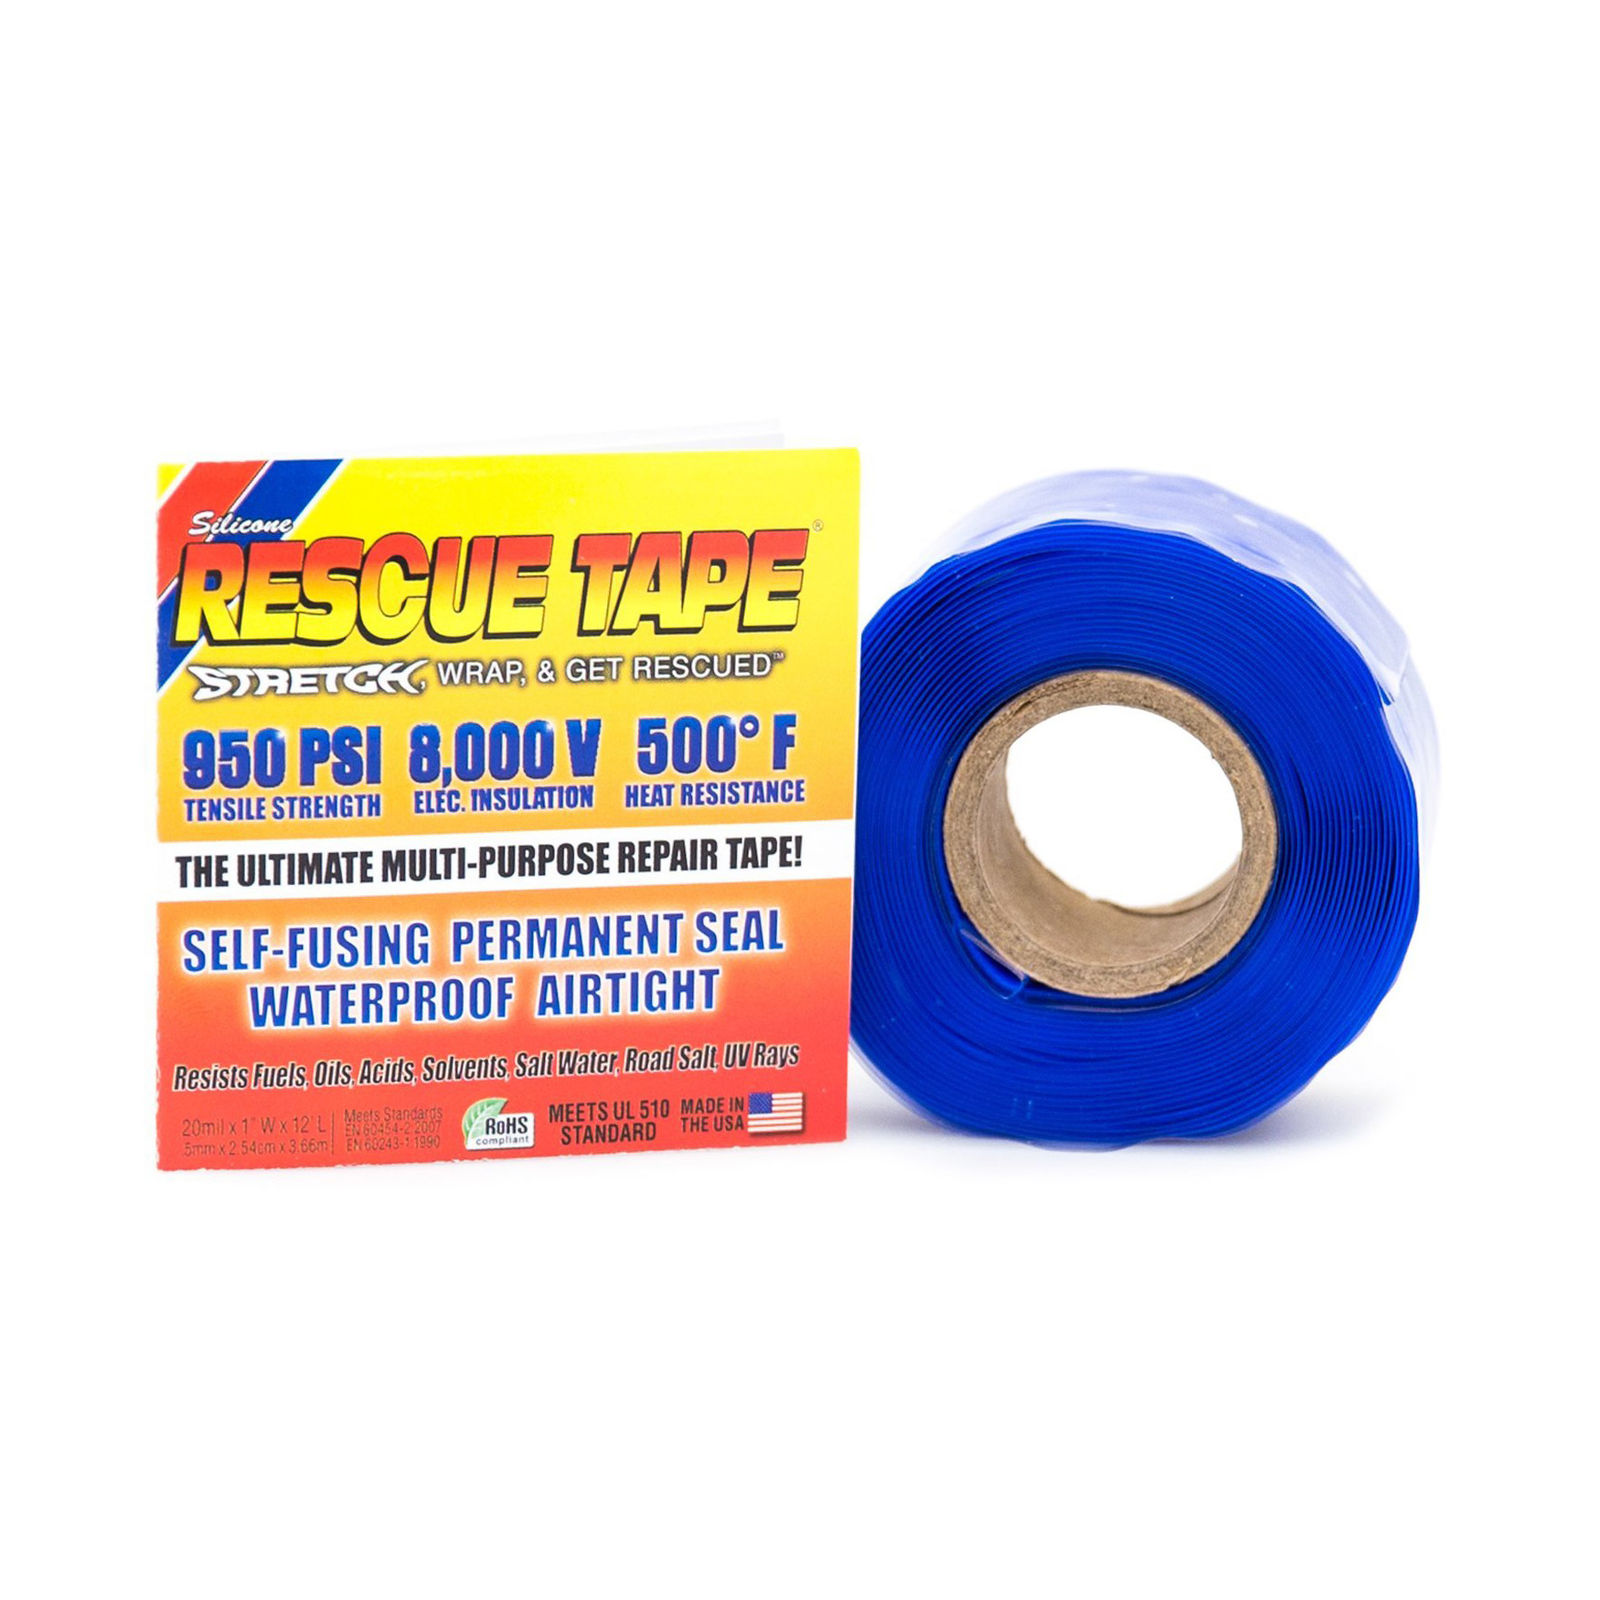 Rescue Tape for Emergencies and All-purpose repairs